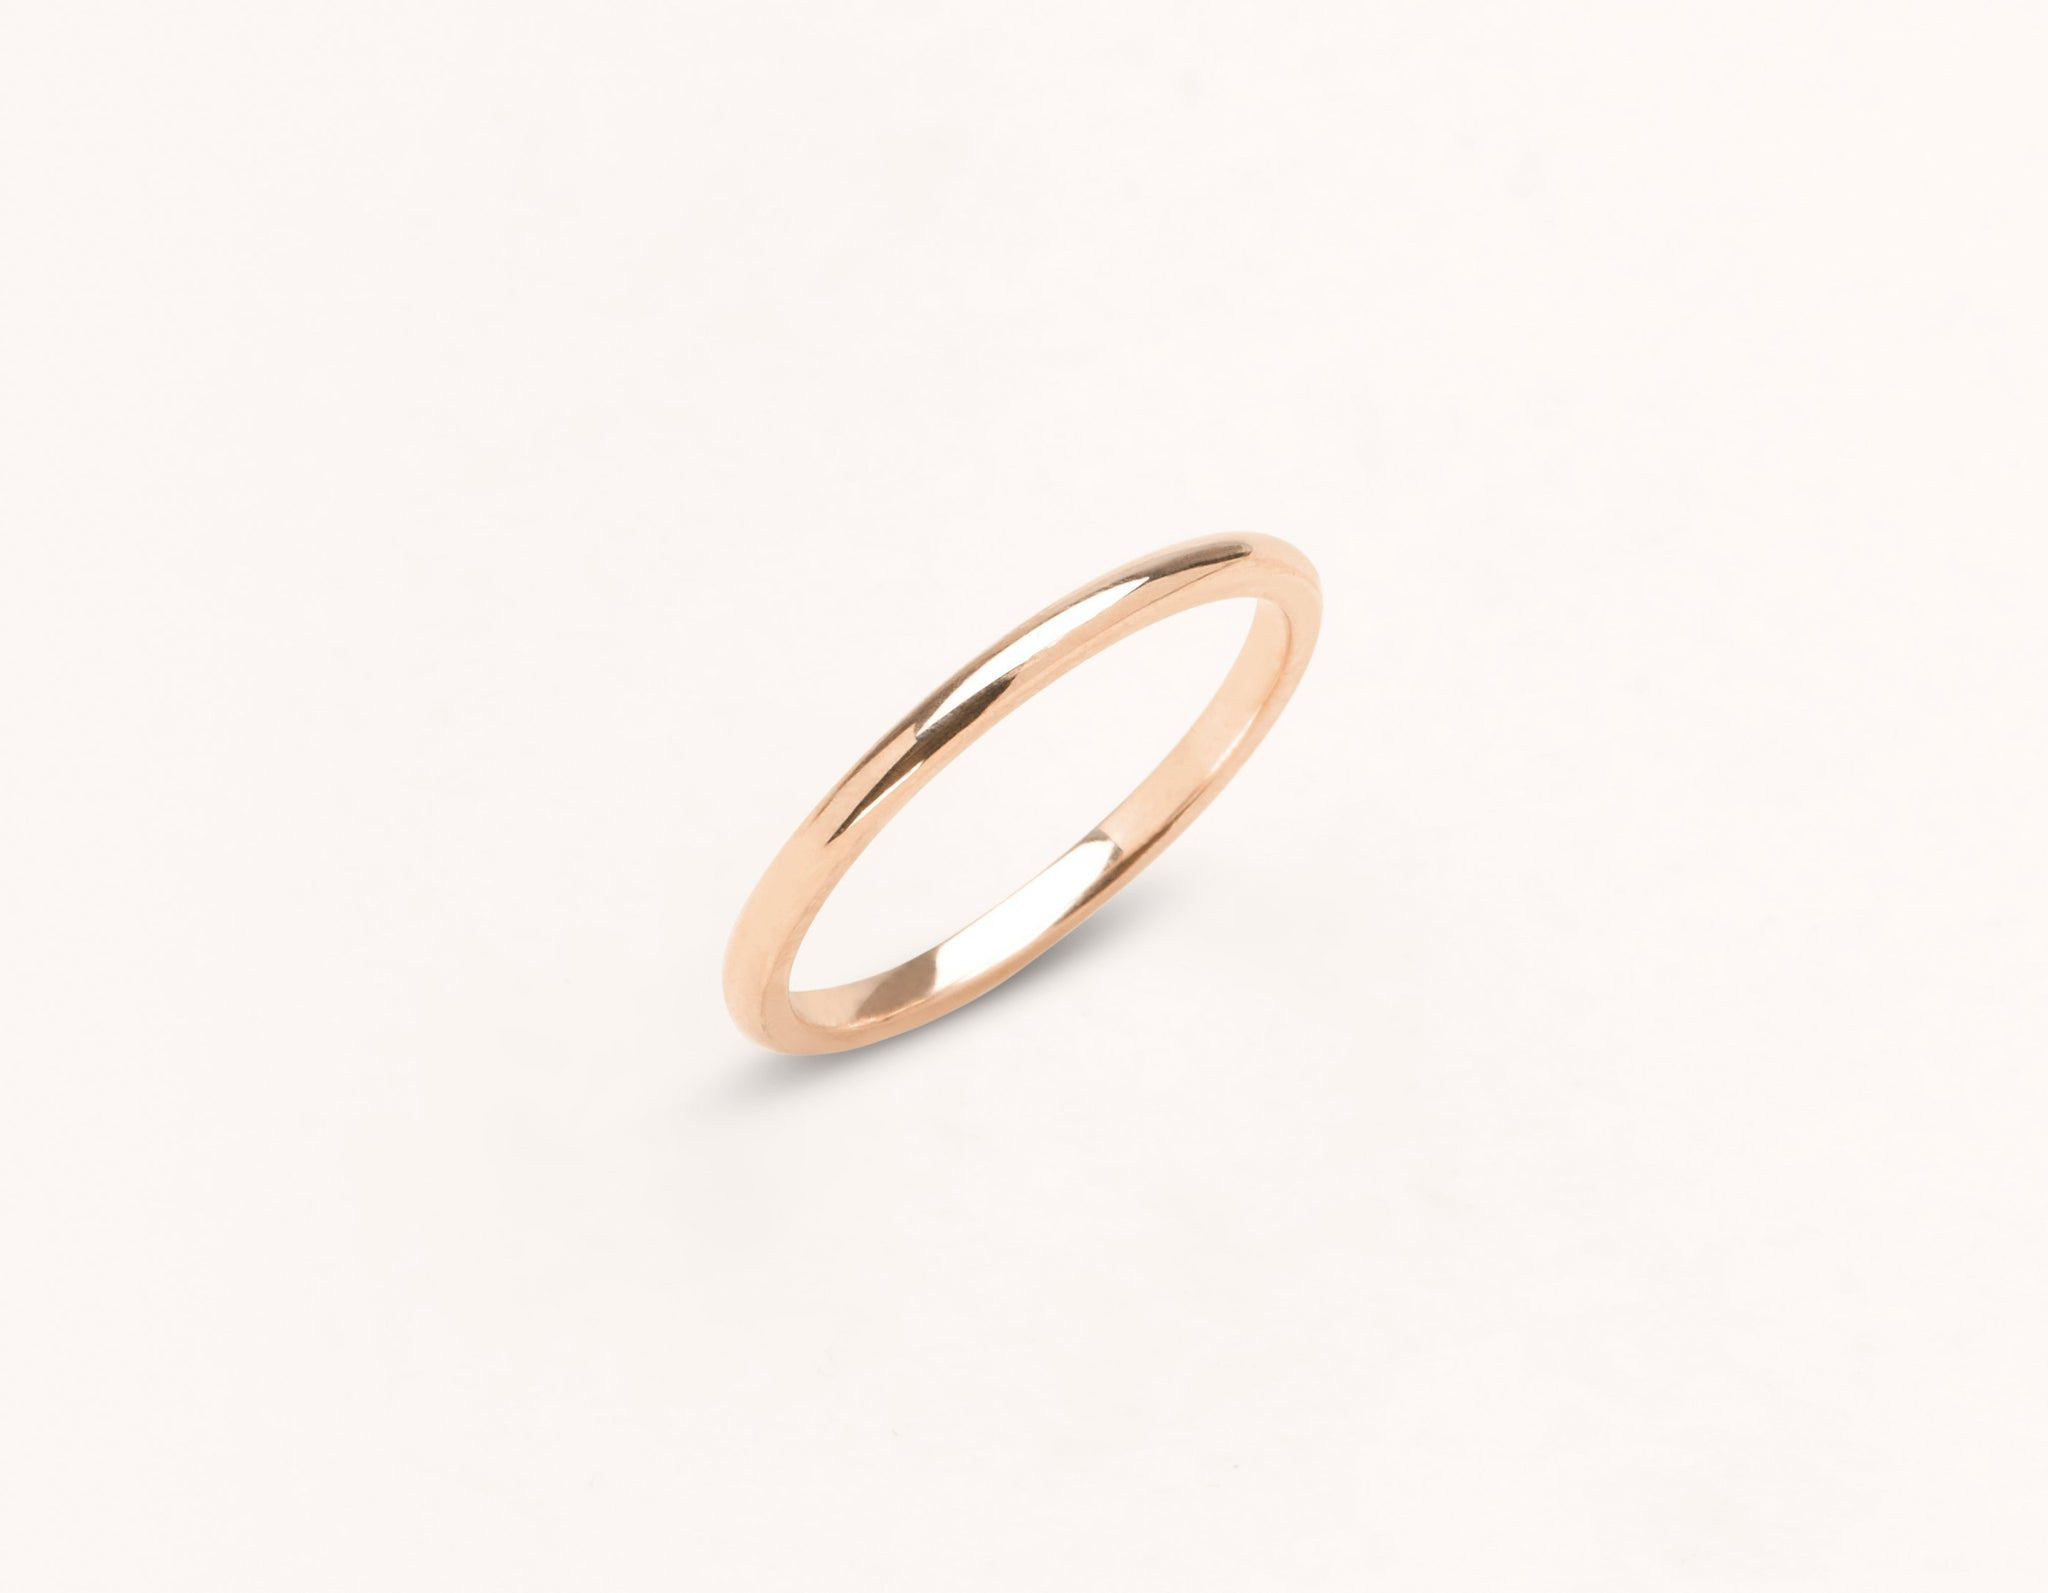 Minimalist 18k solid rose gold 1.5 mm Round Wedding Band for men and women Vrai and Oro